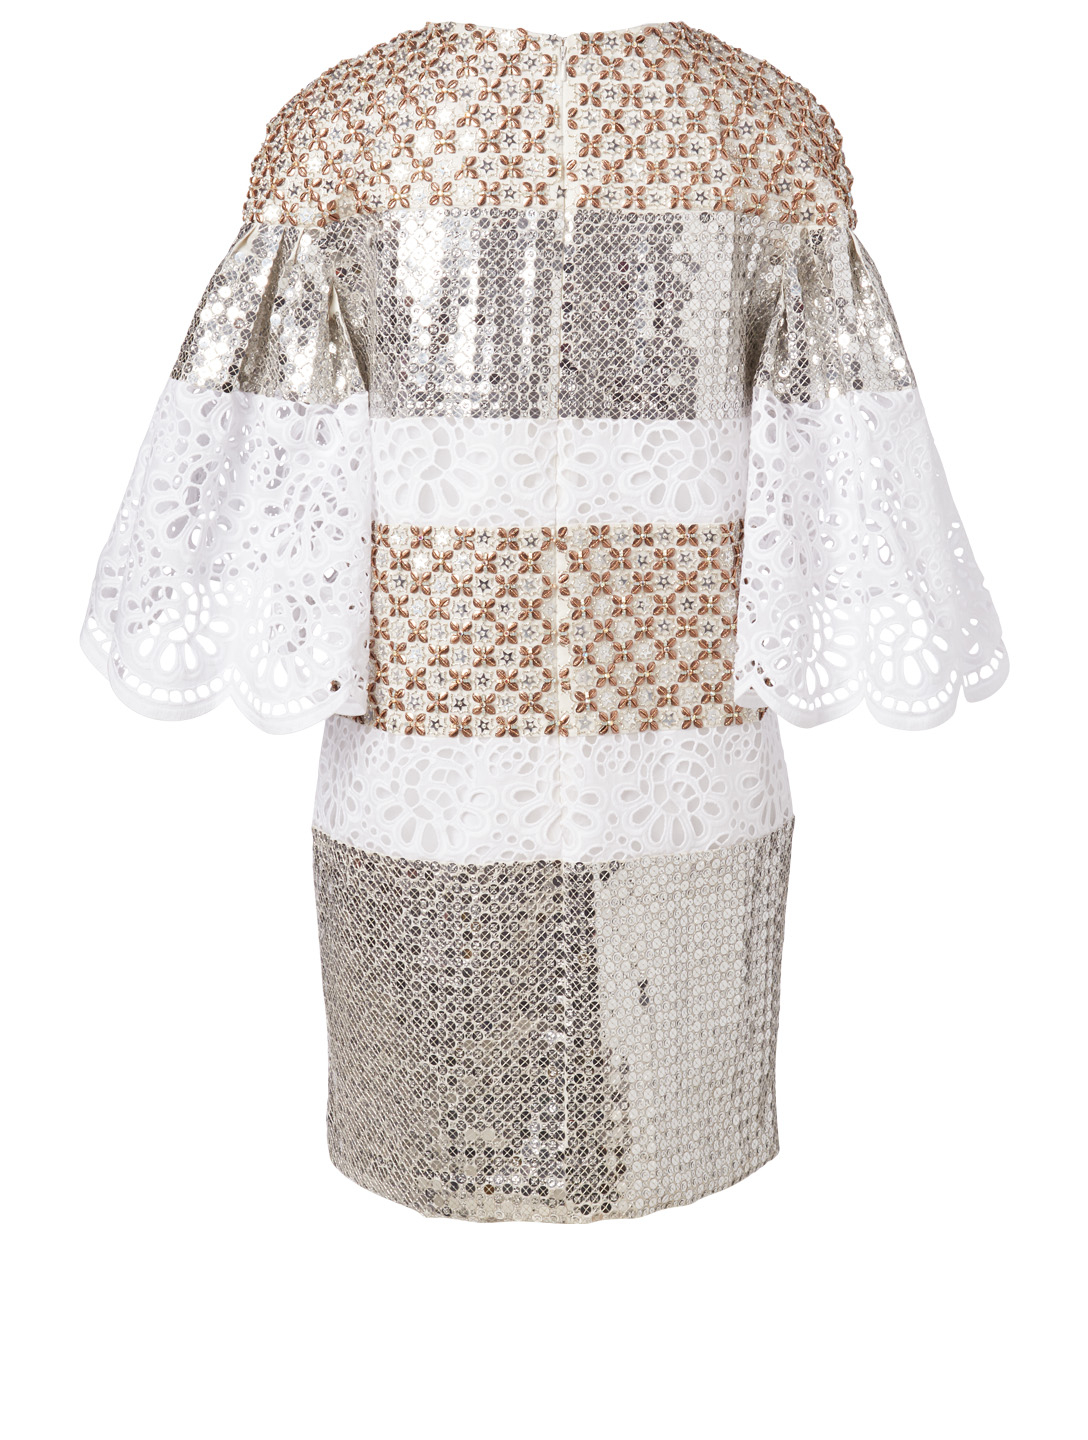 CAROLINA HERRERA Silk And Sequin Mini Dress Women's White